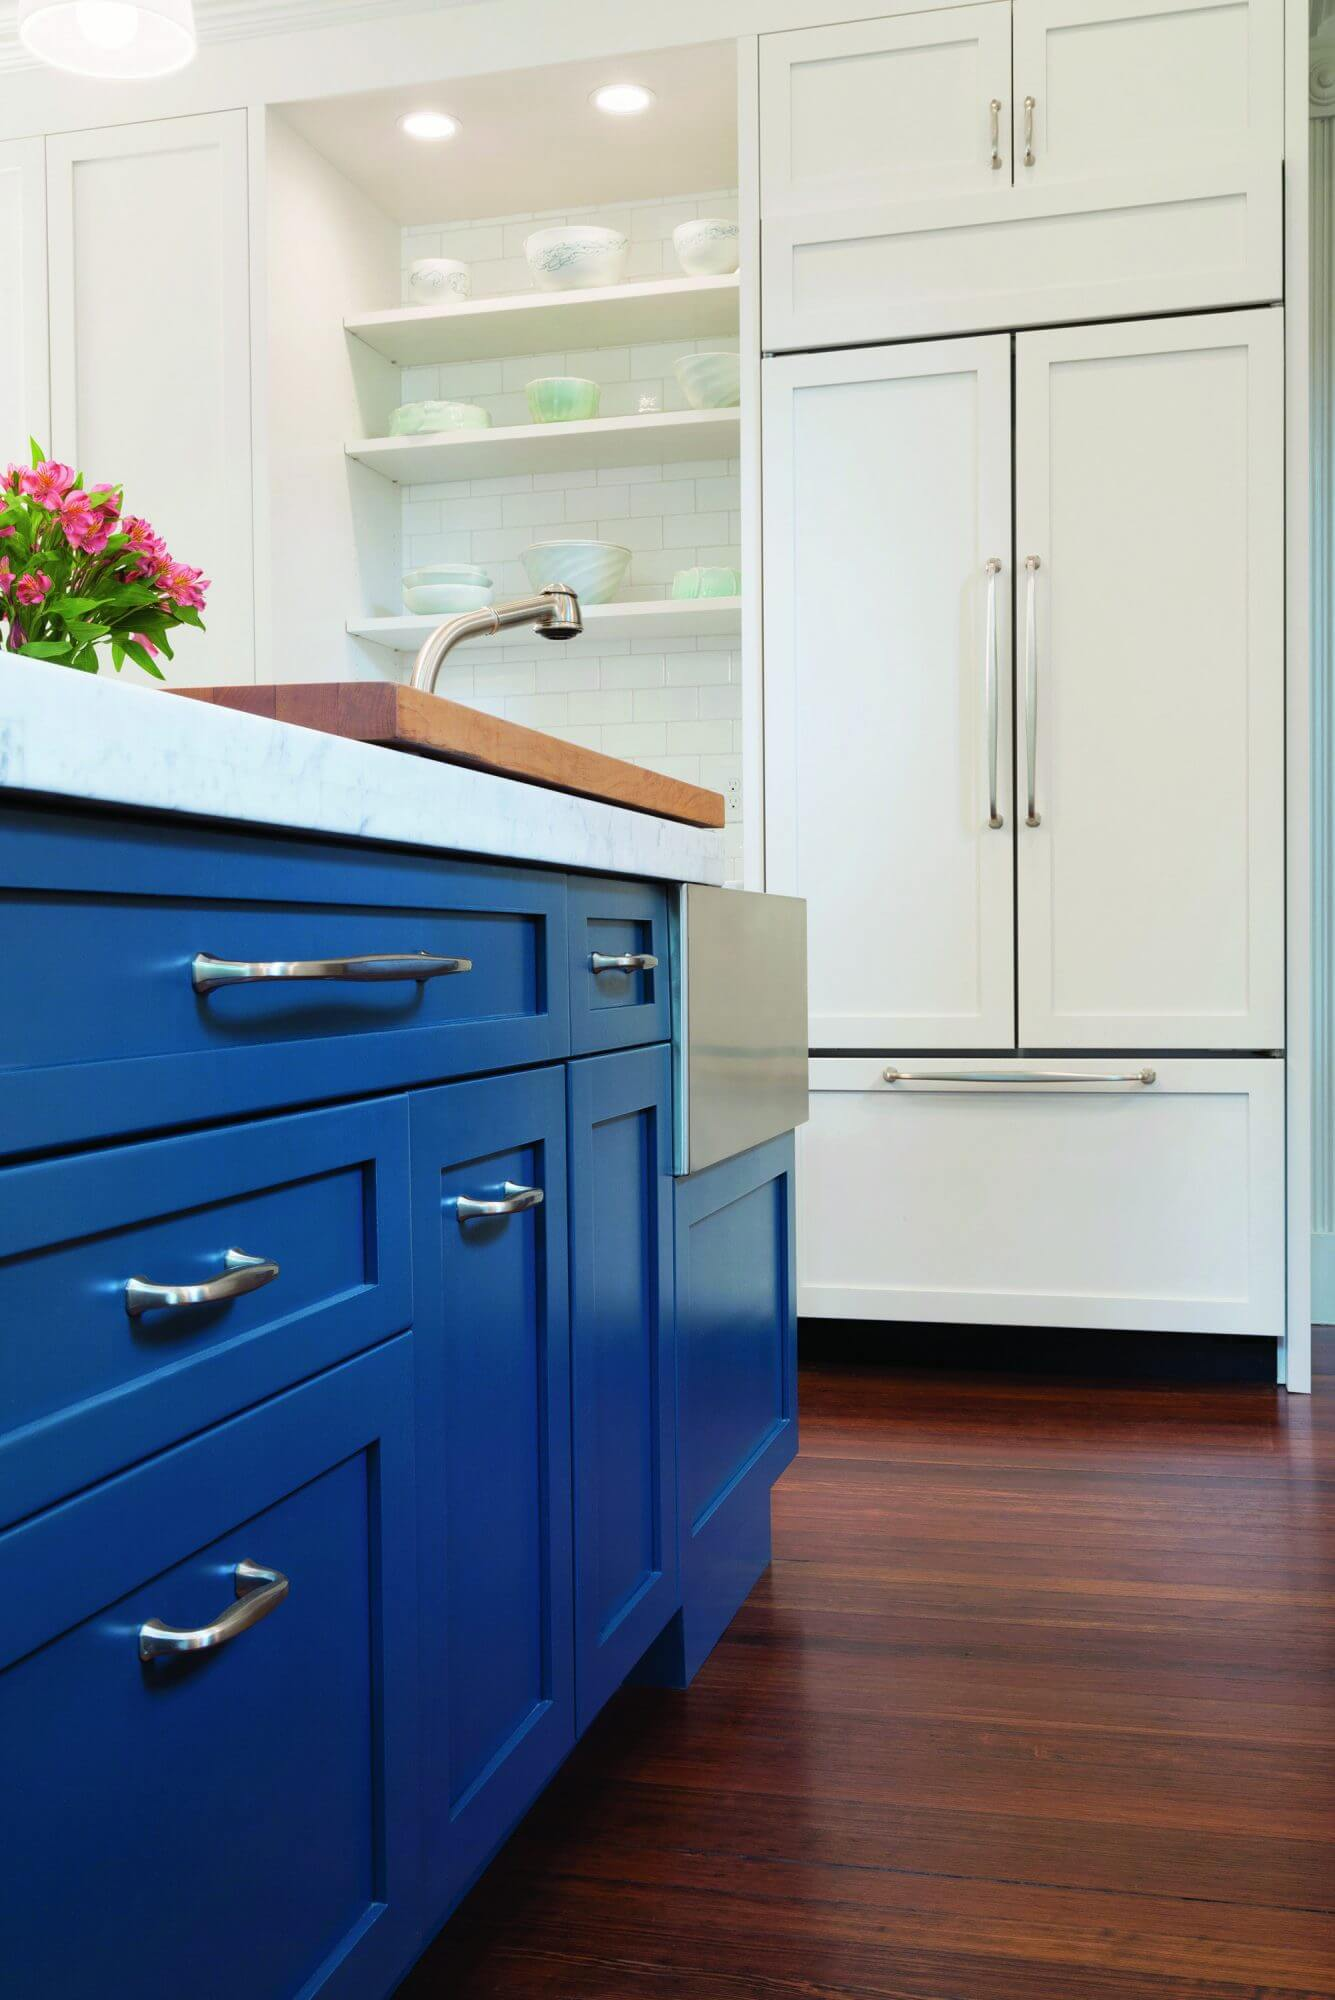 Painting Kitchen Cabinets Estimate Should You Paint Or Replace Your Kitchen Cabinets In